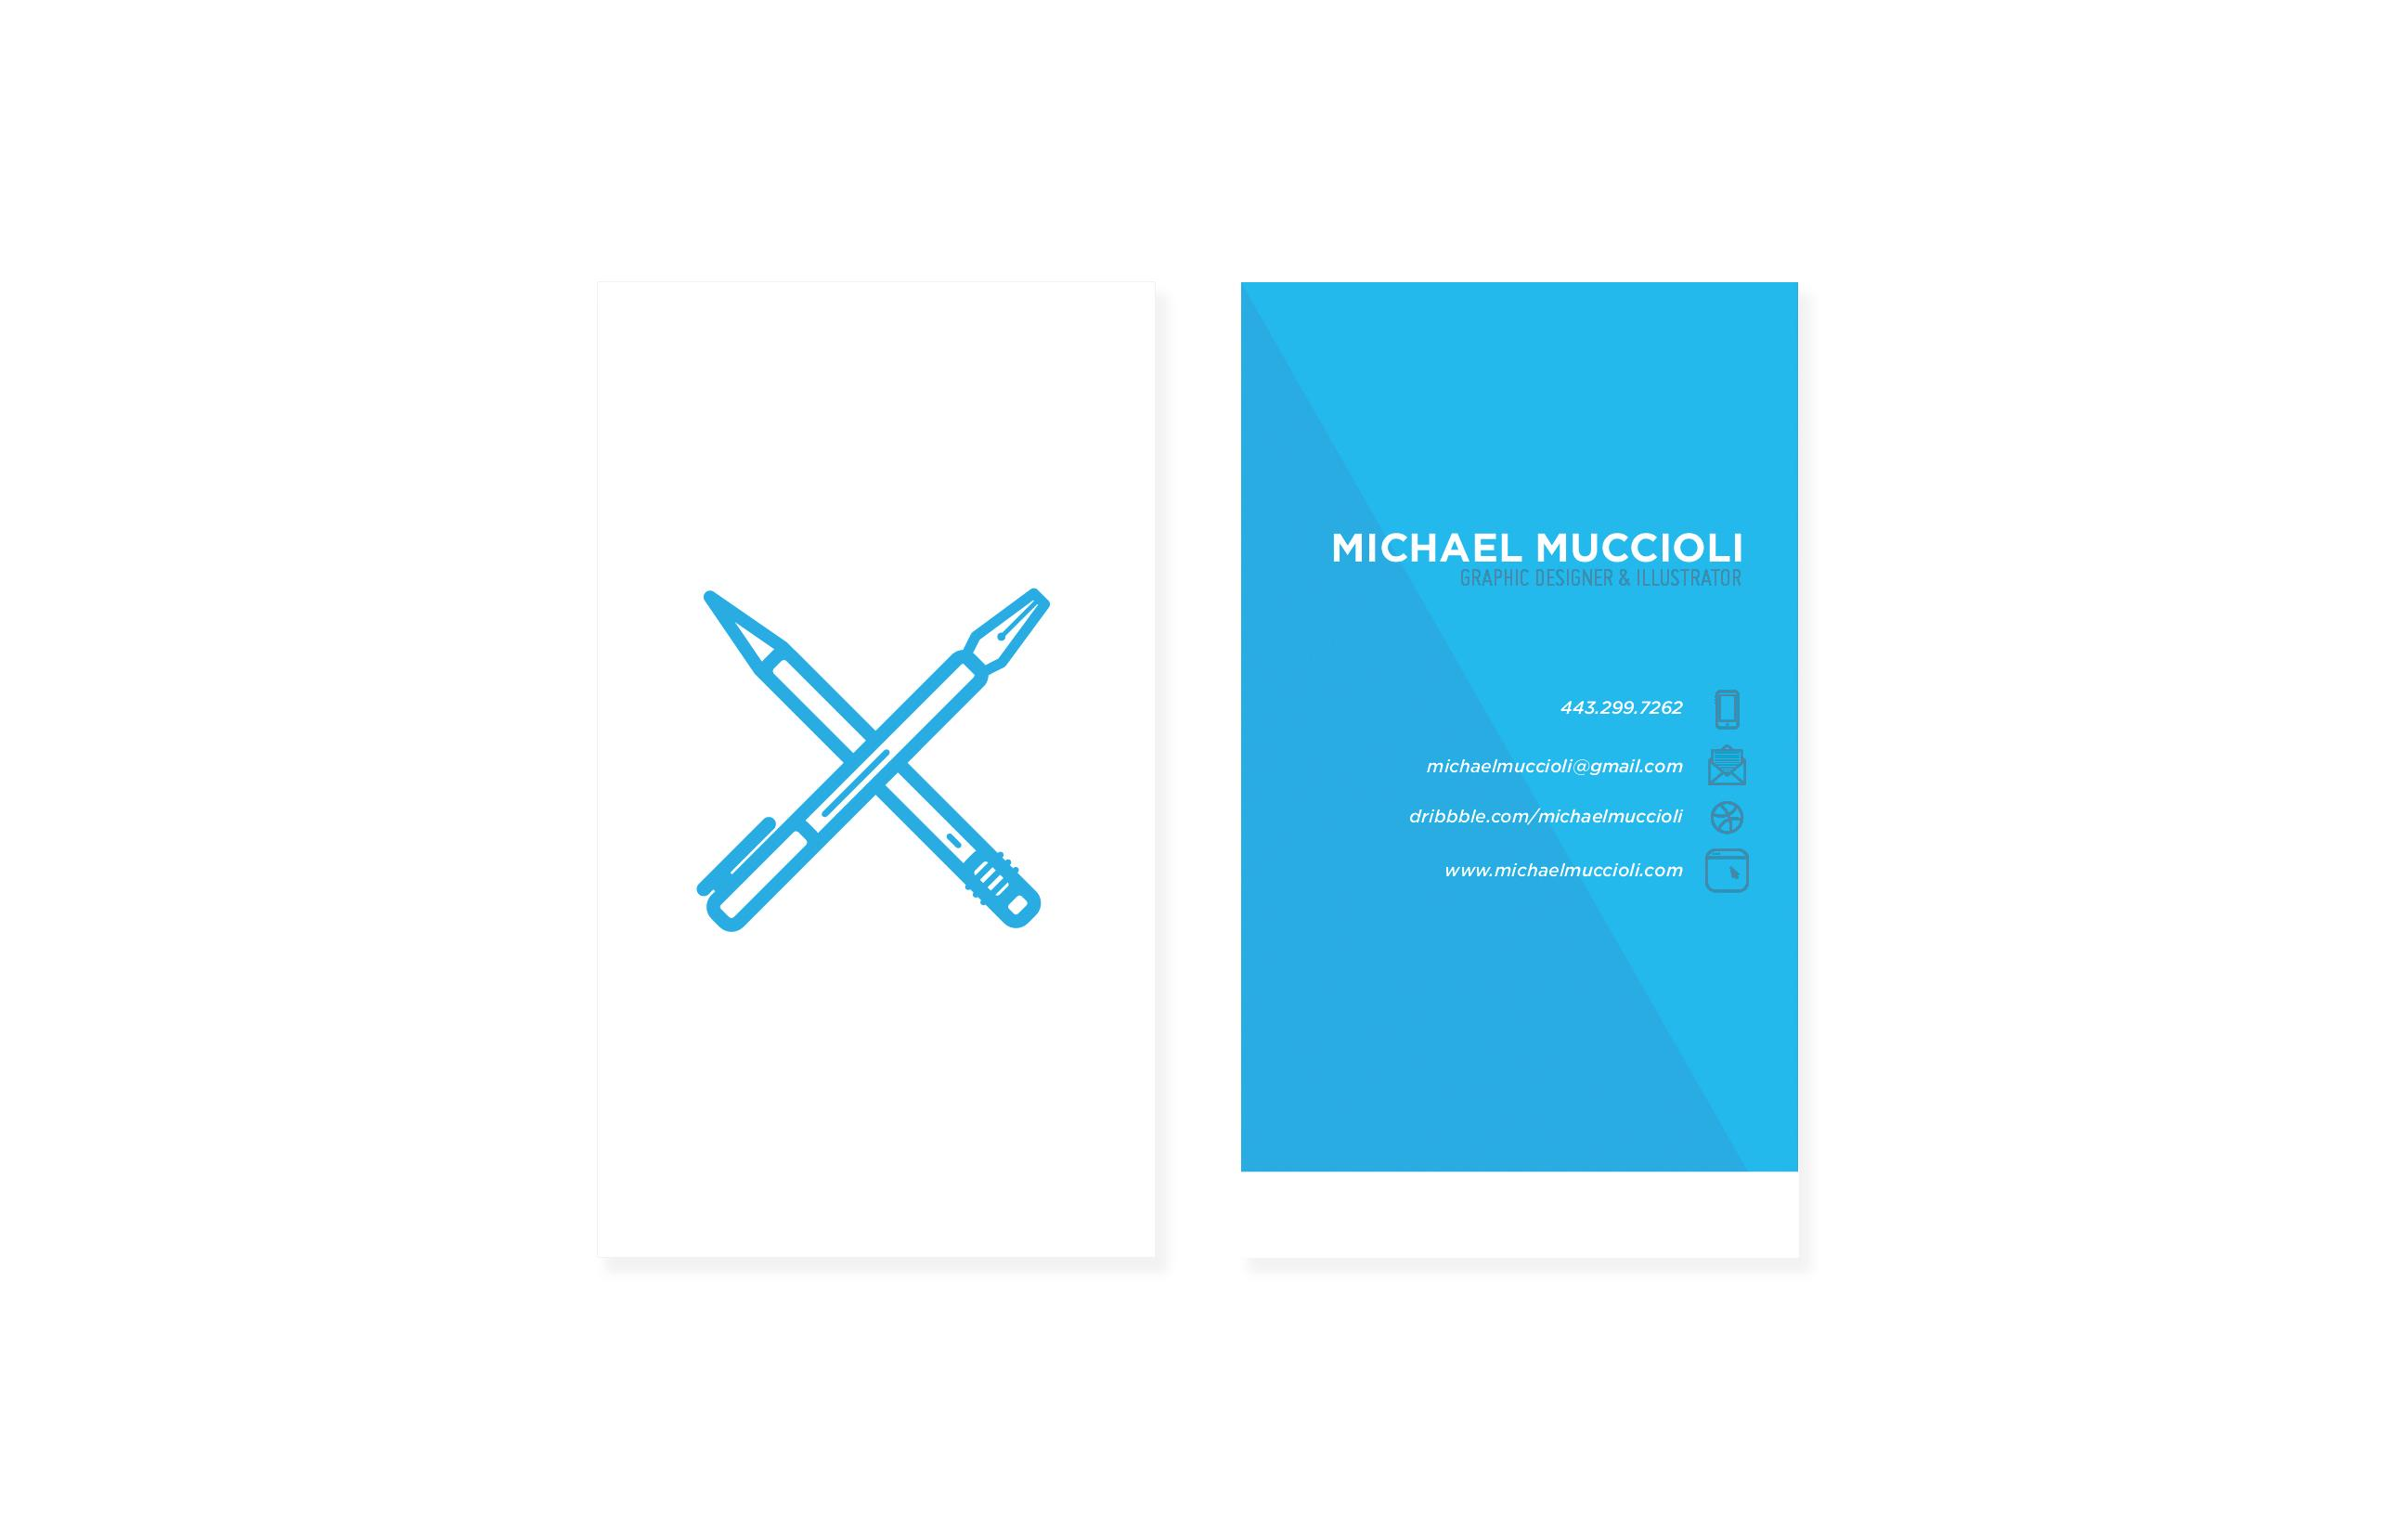 Freelance Business Card - image 5 - student project